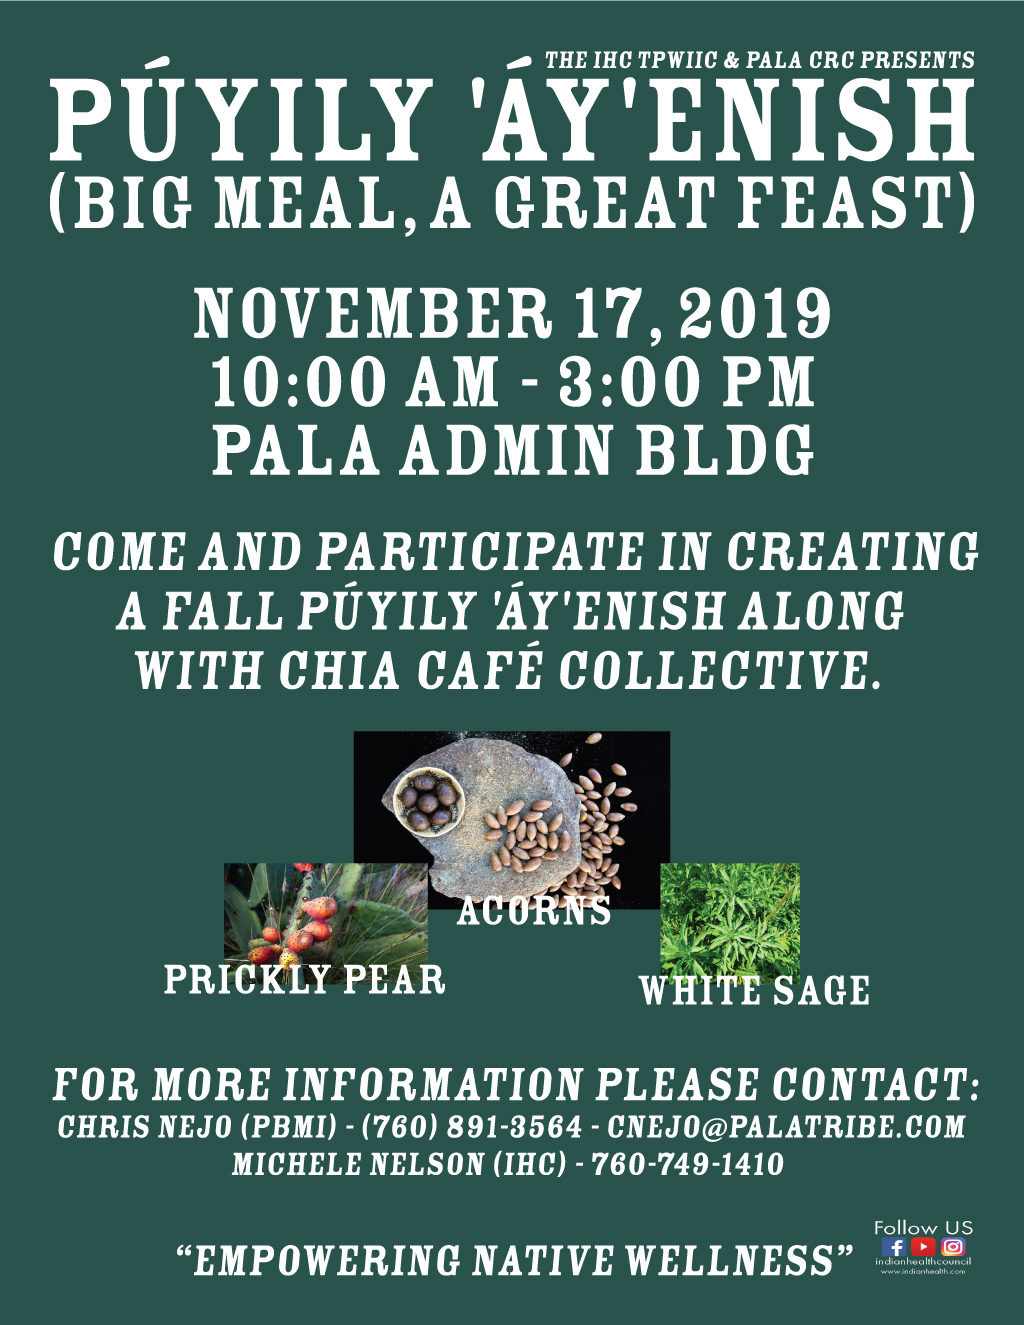 Pala Band of Mission Indians Púyily 'Áy'enish Big Meal A Great Feast2019